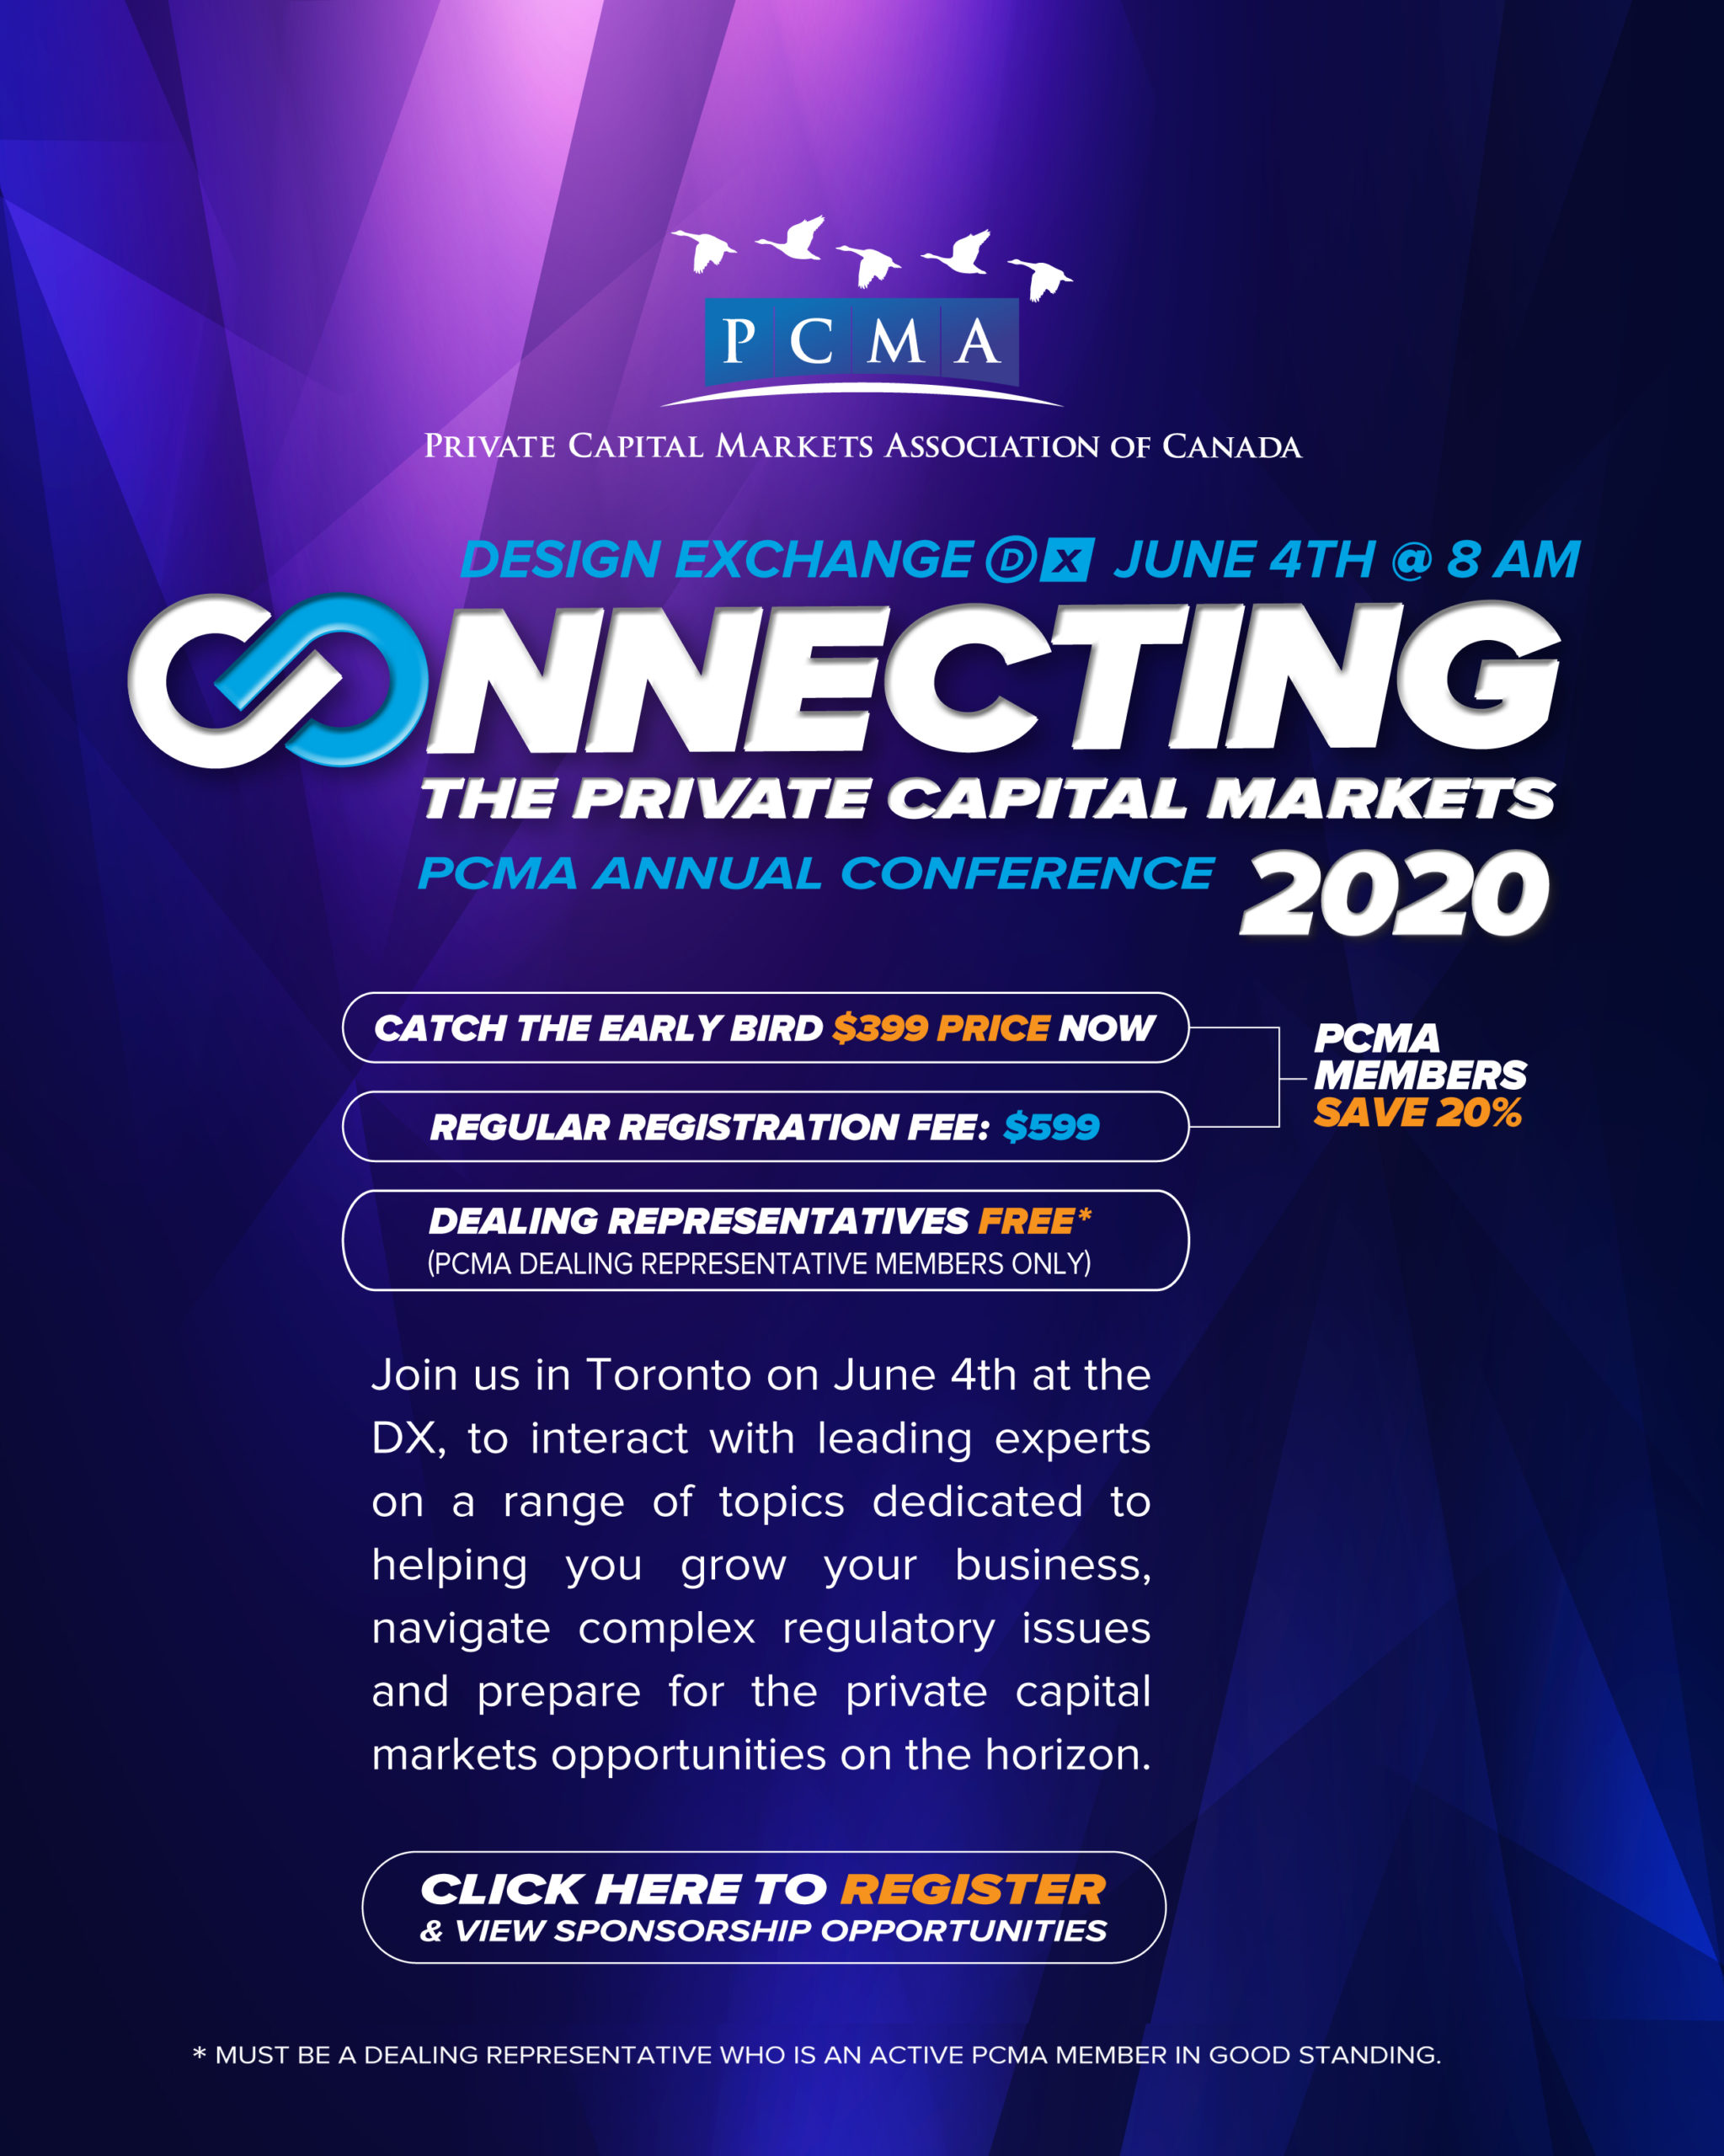 Connecting the Private Capital Markets: PCMA Annual Conference 2020